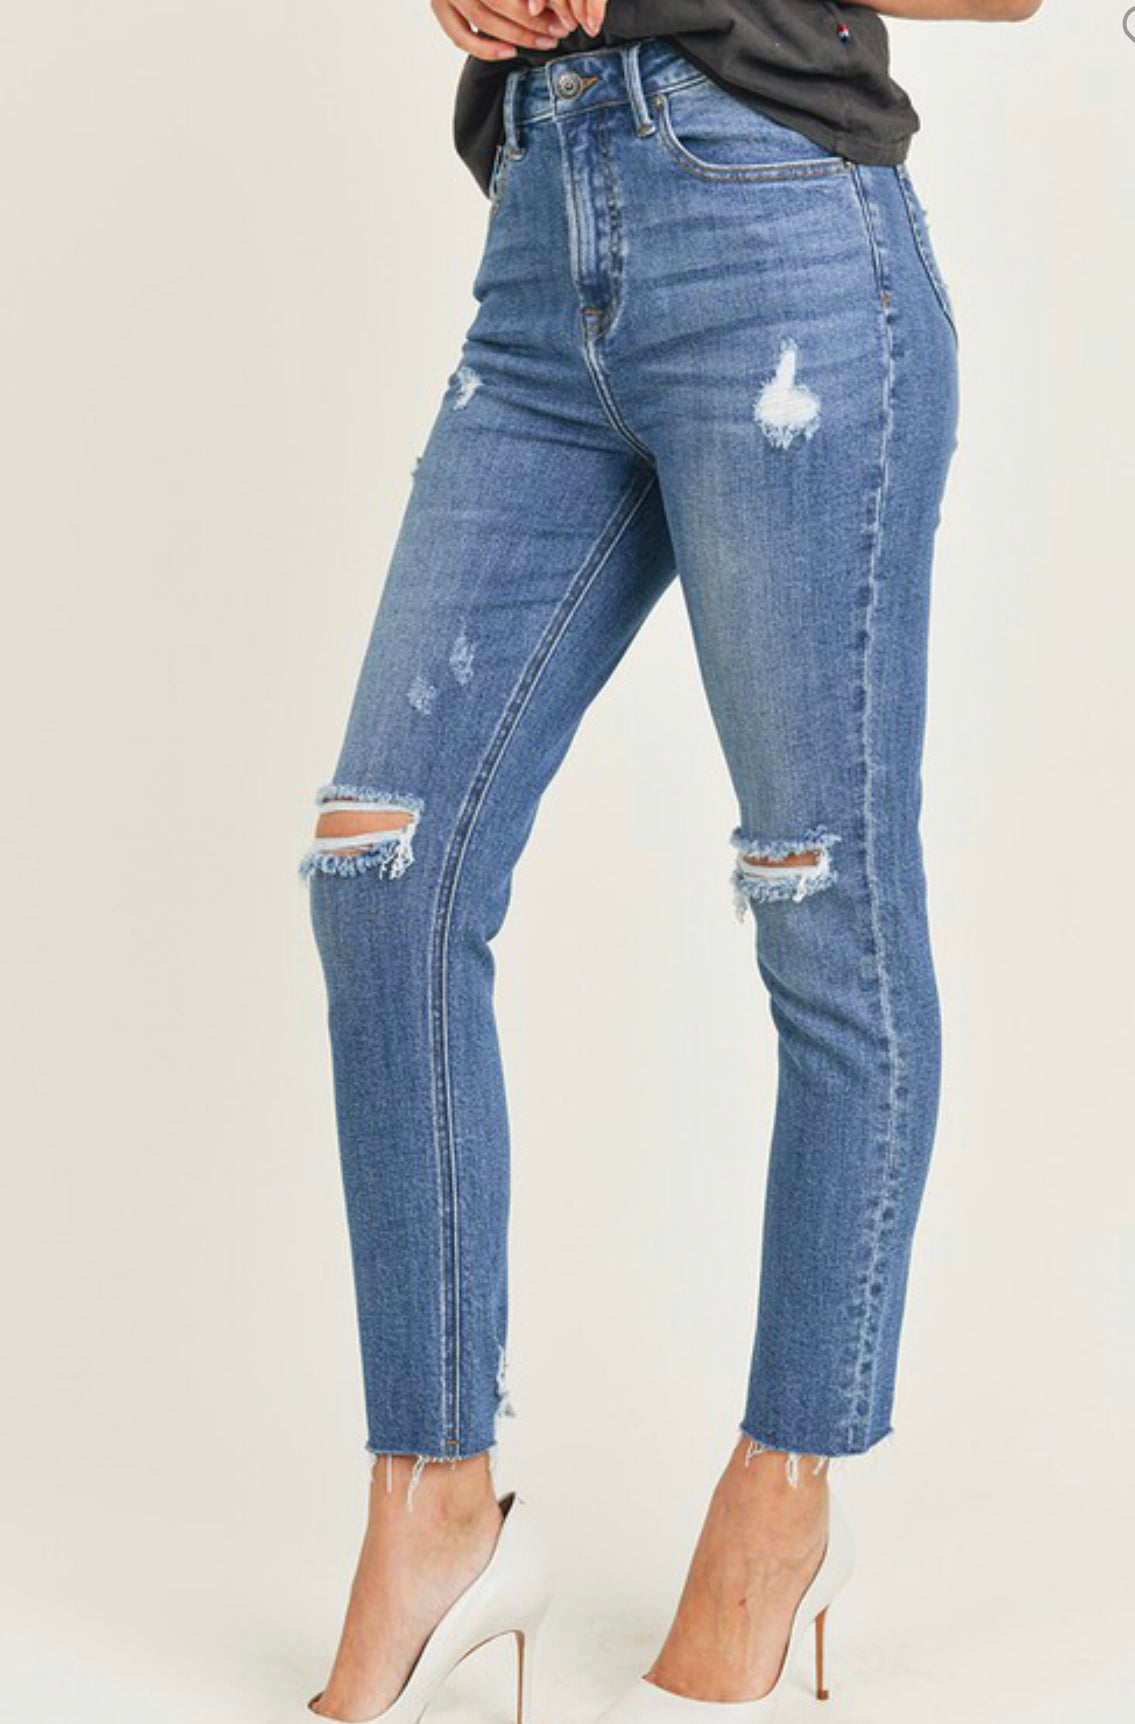 The City High Rise Straight Leg Jeans